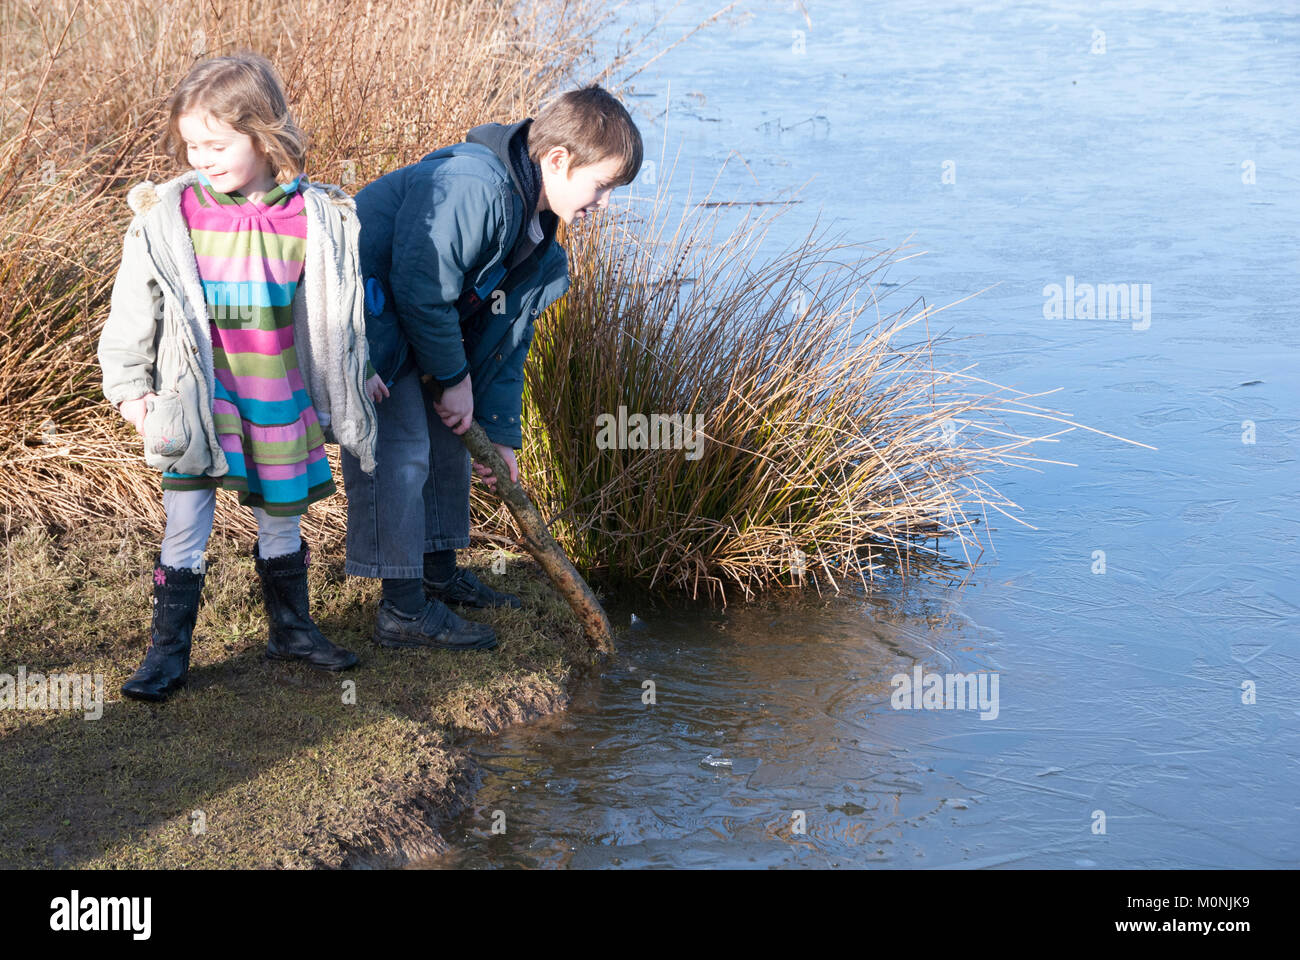 Sheffield, UK- 08 Feb: Children play, smashing the ice on the frozen lake on 08 Feb 2015 at Rother Valley Country - Stock Image